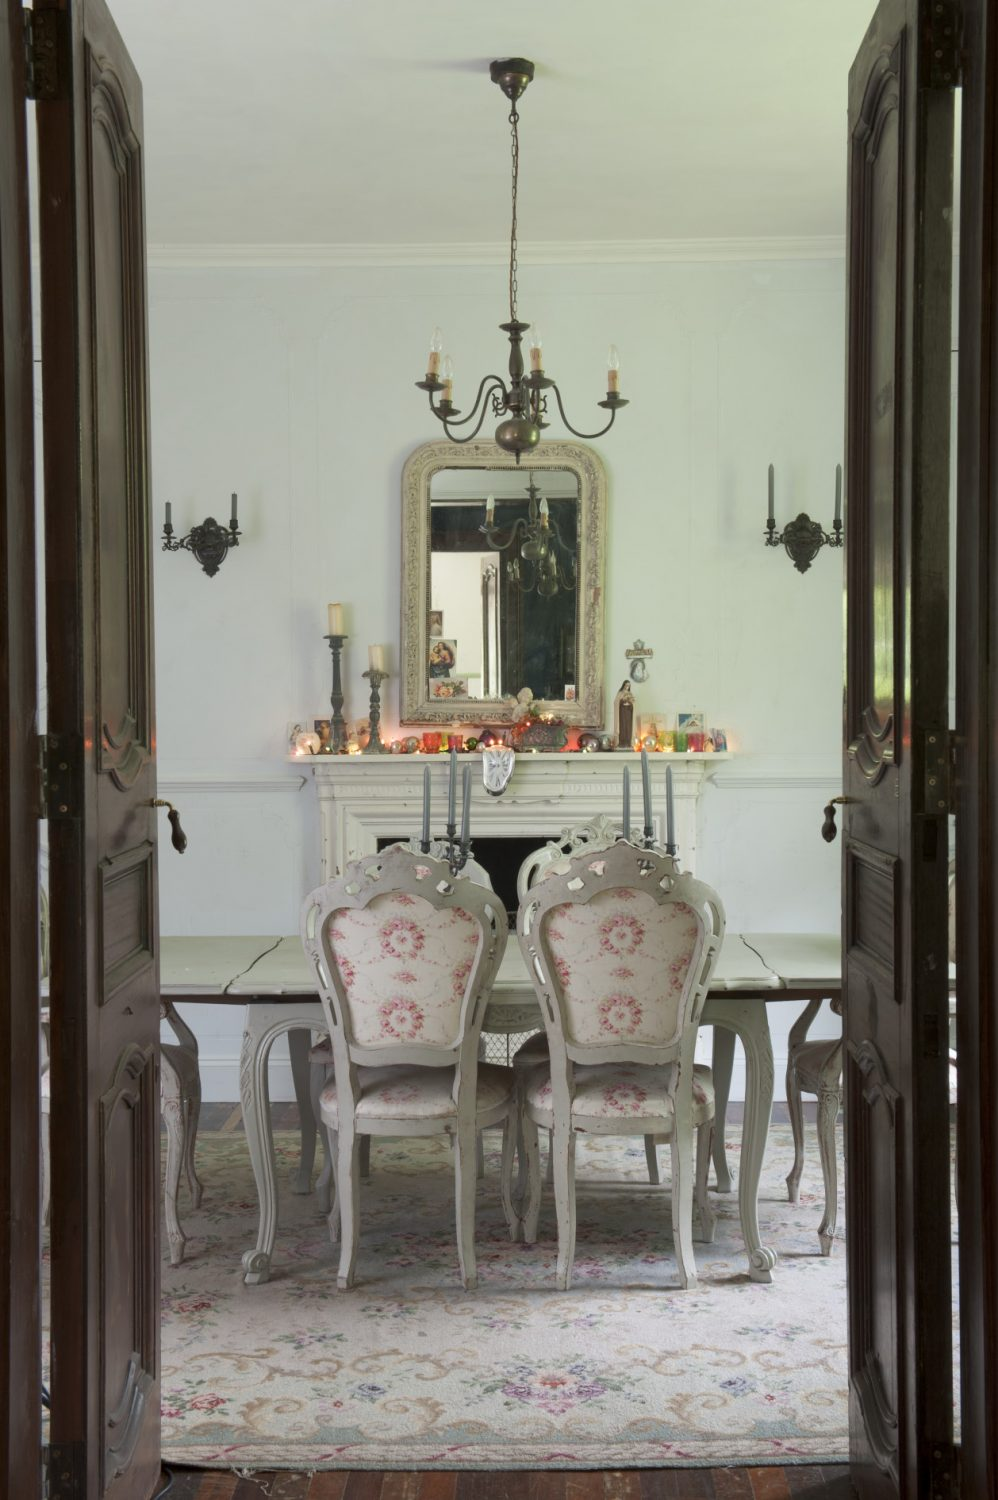 In the dining room, a false chimneybreast has been created and a reclaimed and painted fireplace and mantelpiece glows with soft blossom pink fairy lights and baubles